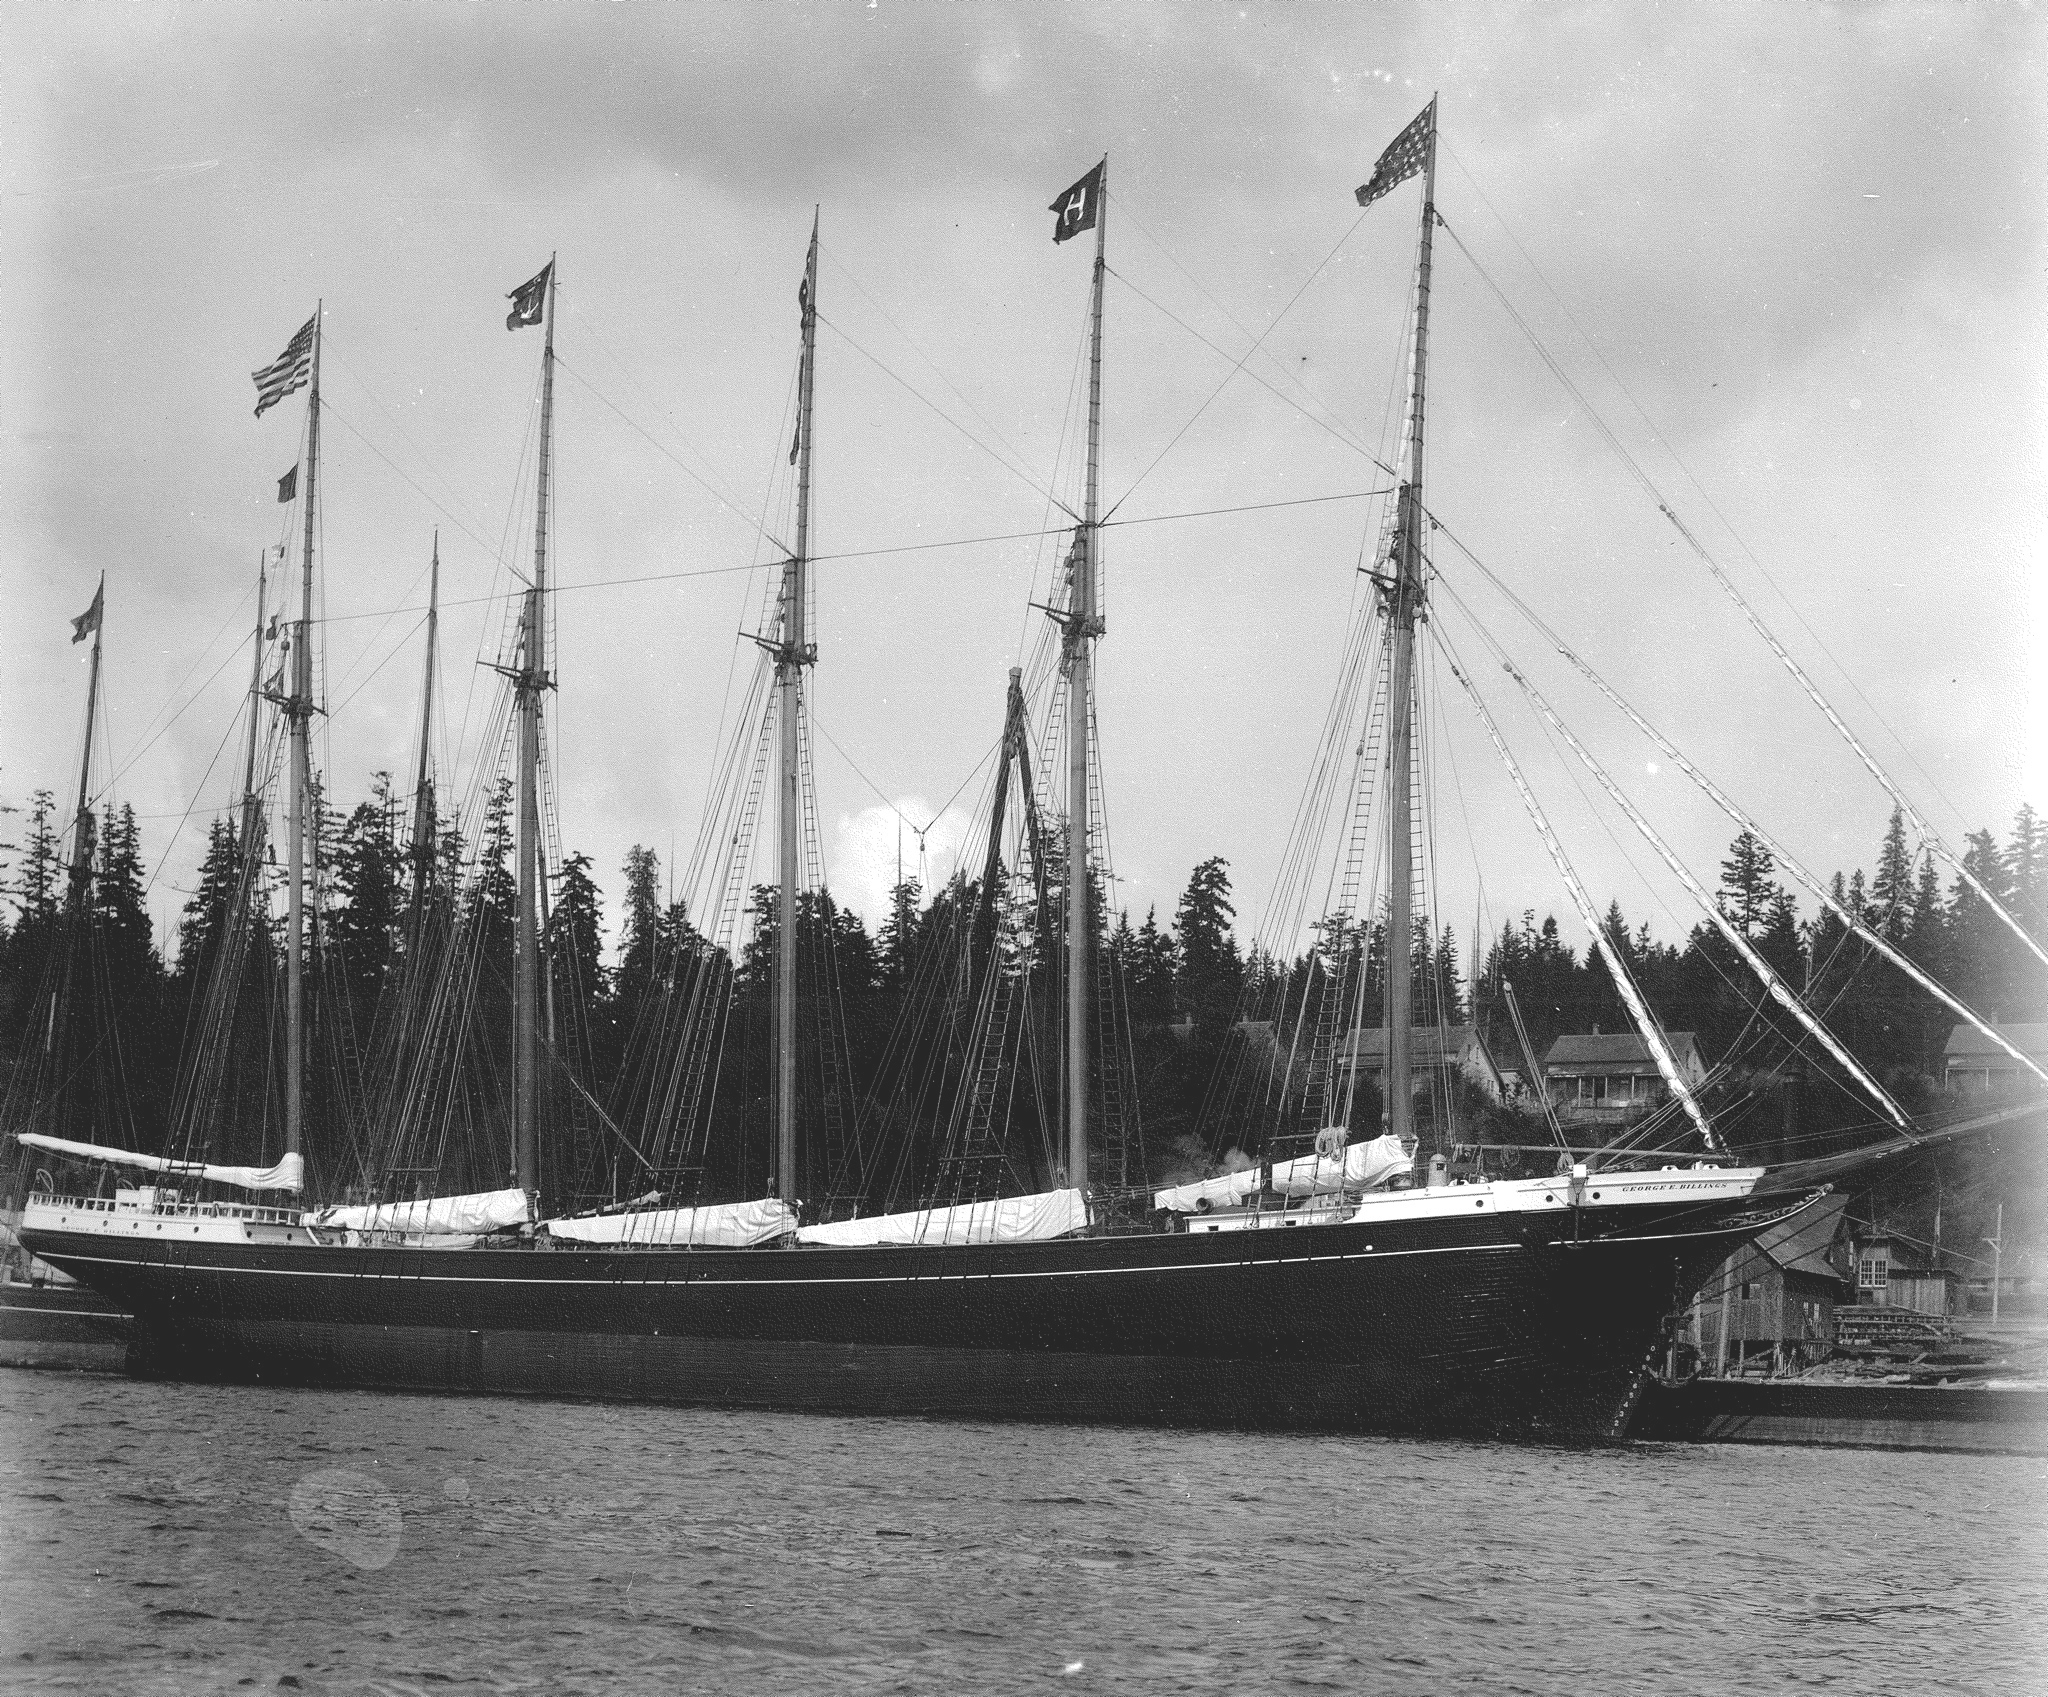 Five-masted lumber schooner George E. Billings shortly after launching flying the Hall Bros. house flag from the mast. The Hall Bros. built the 224-foot wooden vessel at Port Blakely, Washington for their own account in 1903. (Photo courtesy of San Francisco Maritime Historic Park: f1.12028)